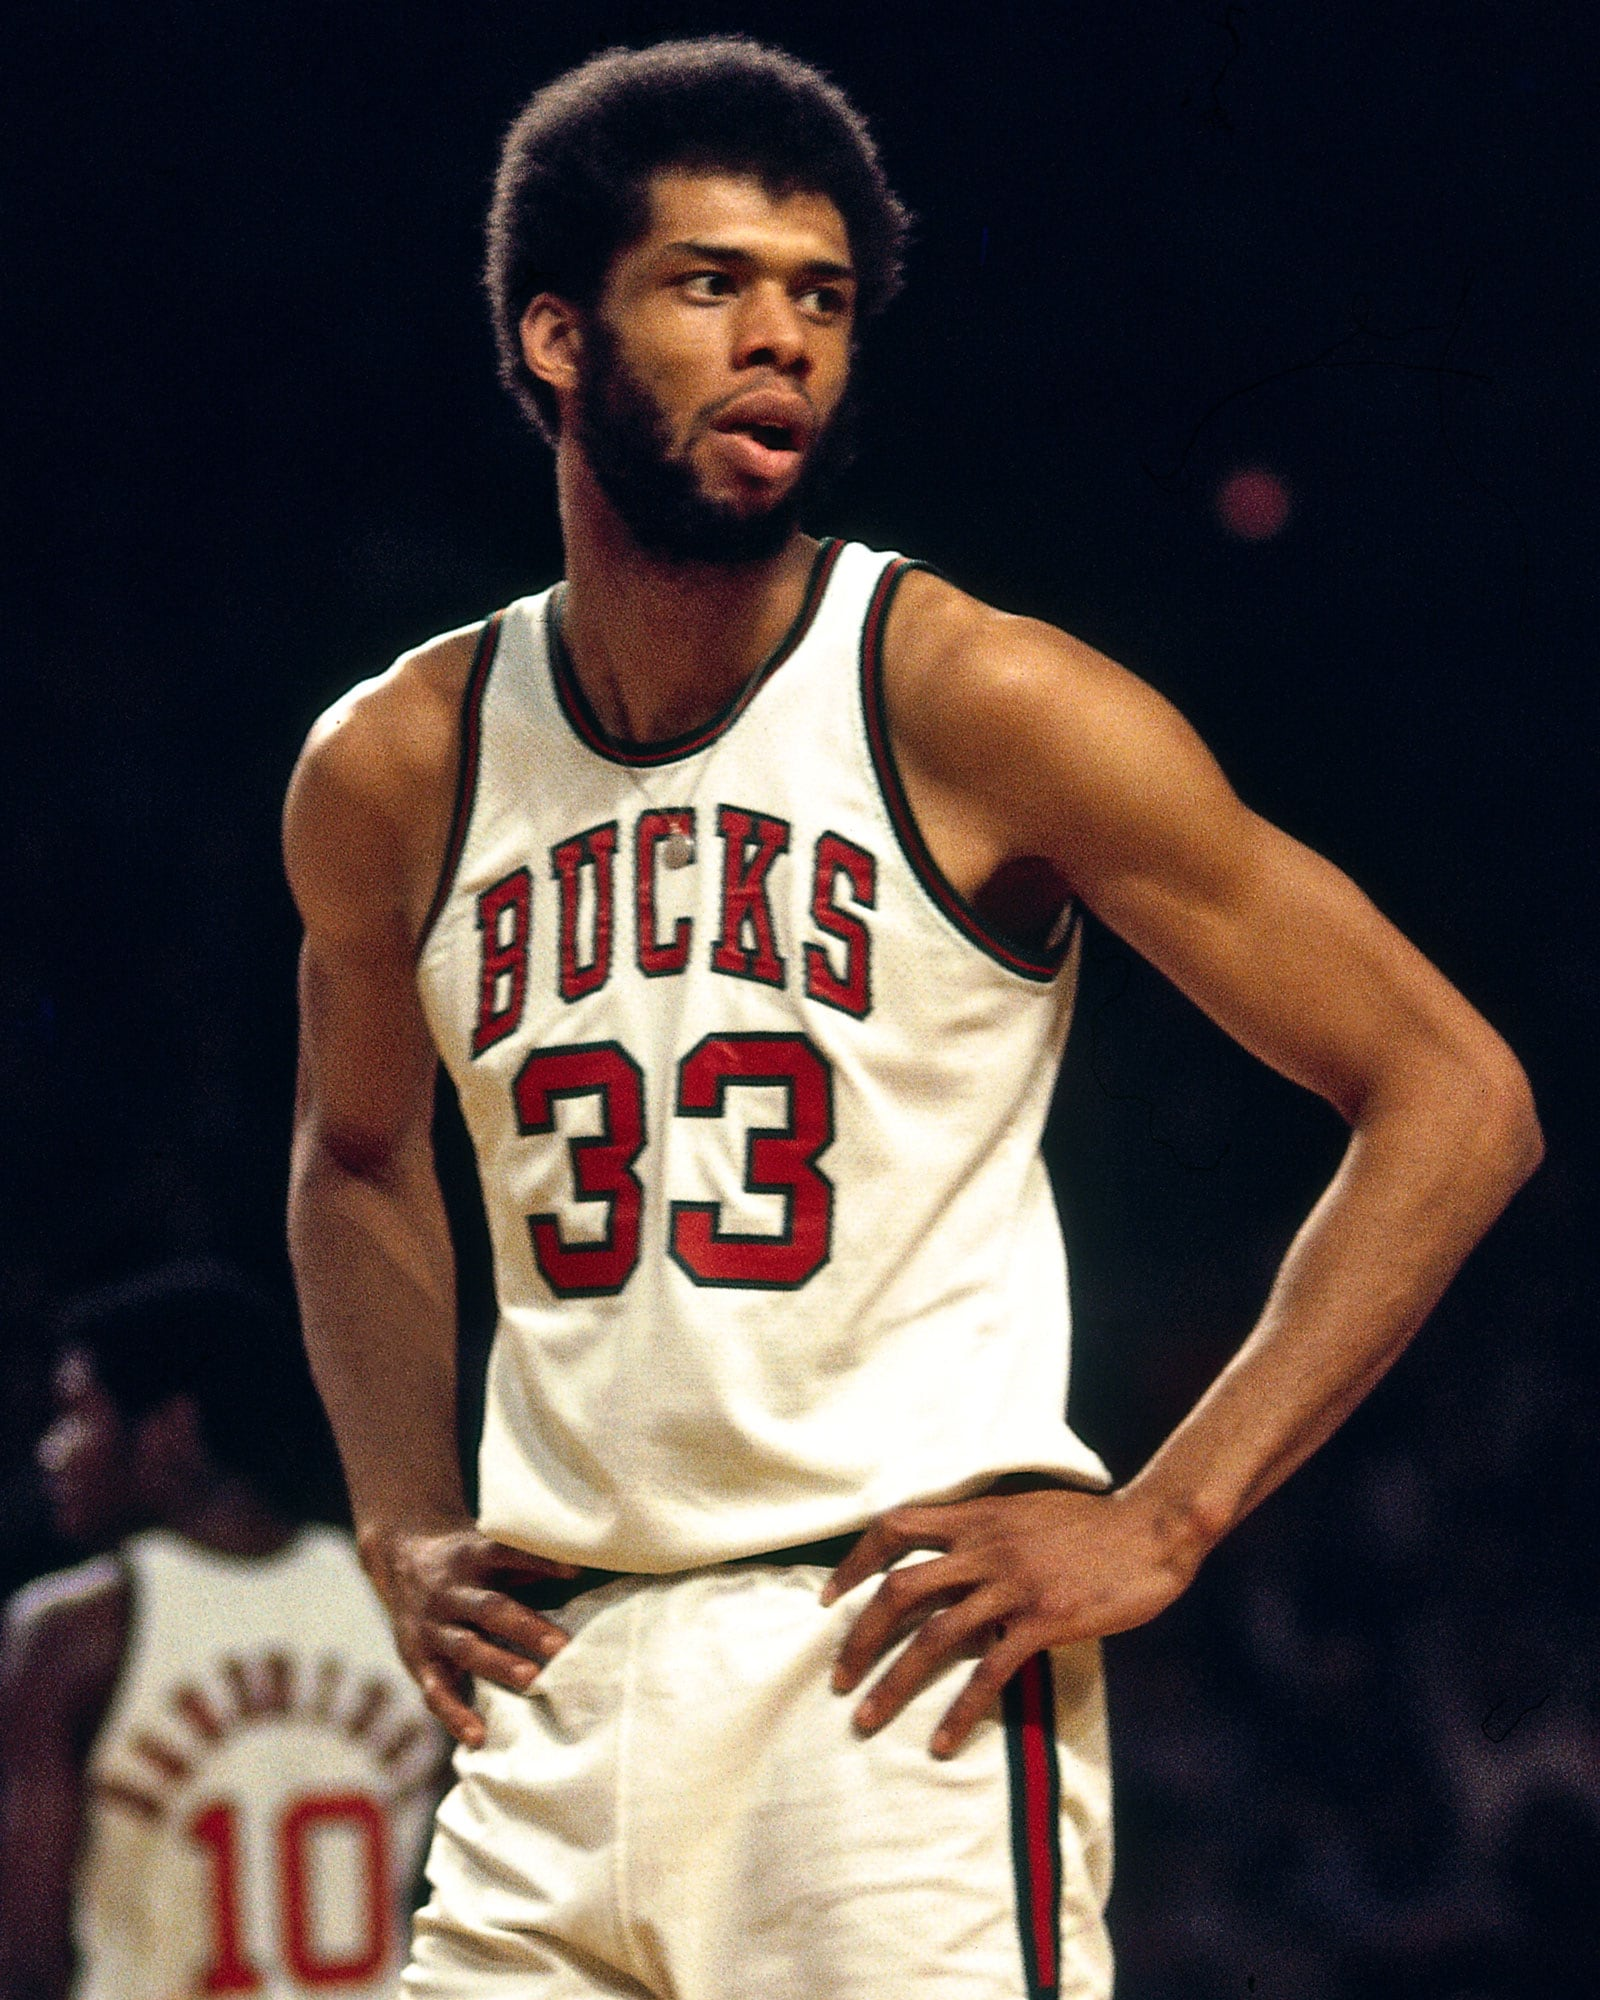 Kareem Abdul-Jabbar of the Milwaukee Bucks was excused from the game to prepare for he funeral of the people murdered in the attack on the building he owned in Washington, D.C.